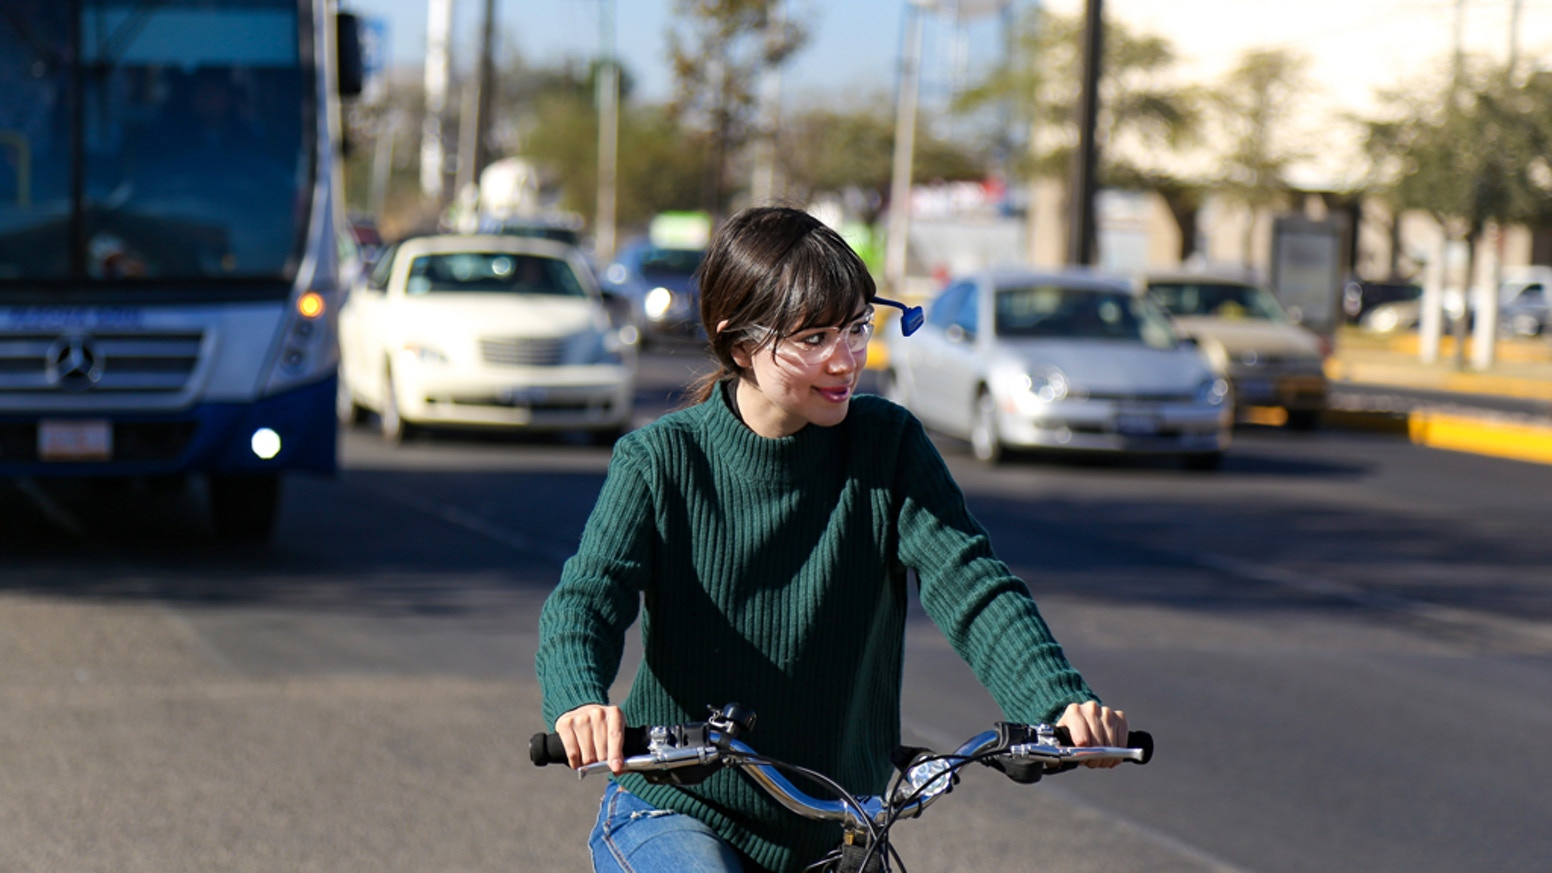 Sehen: one second to react and keep riding the bike. by SEHEN ...